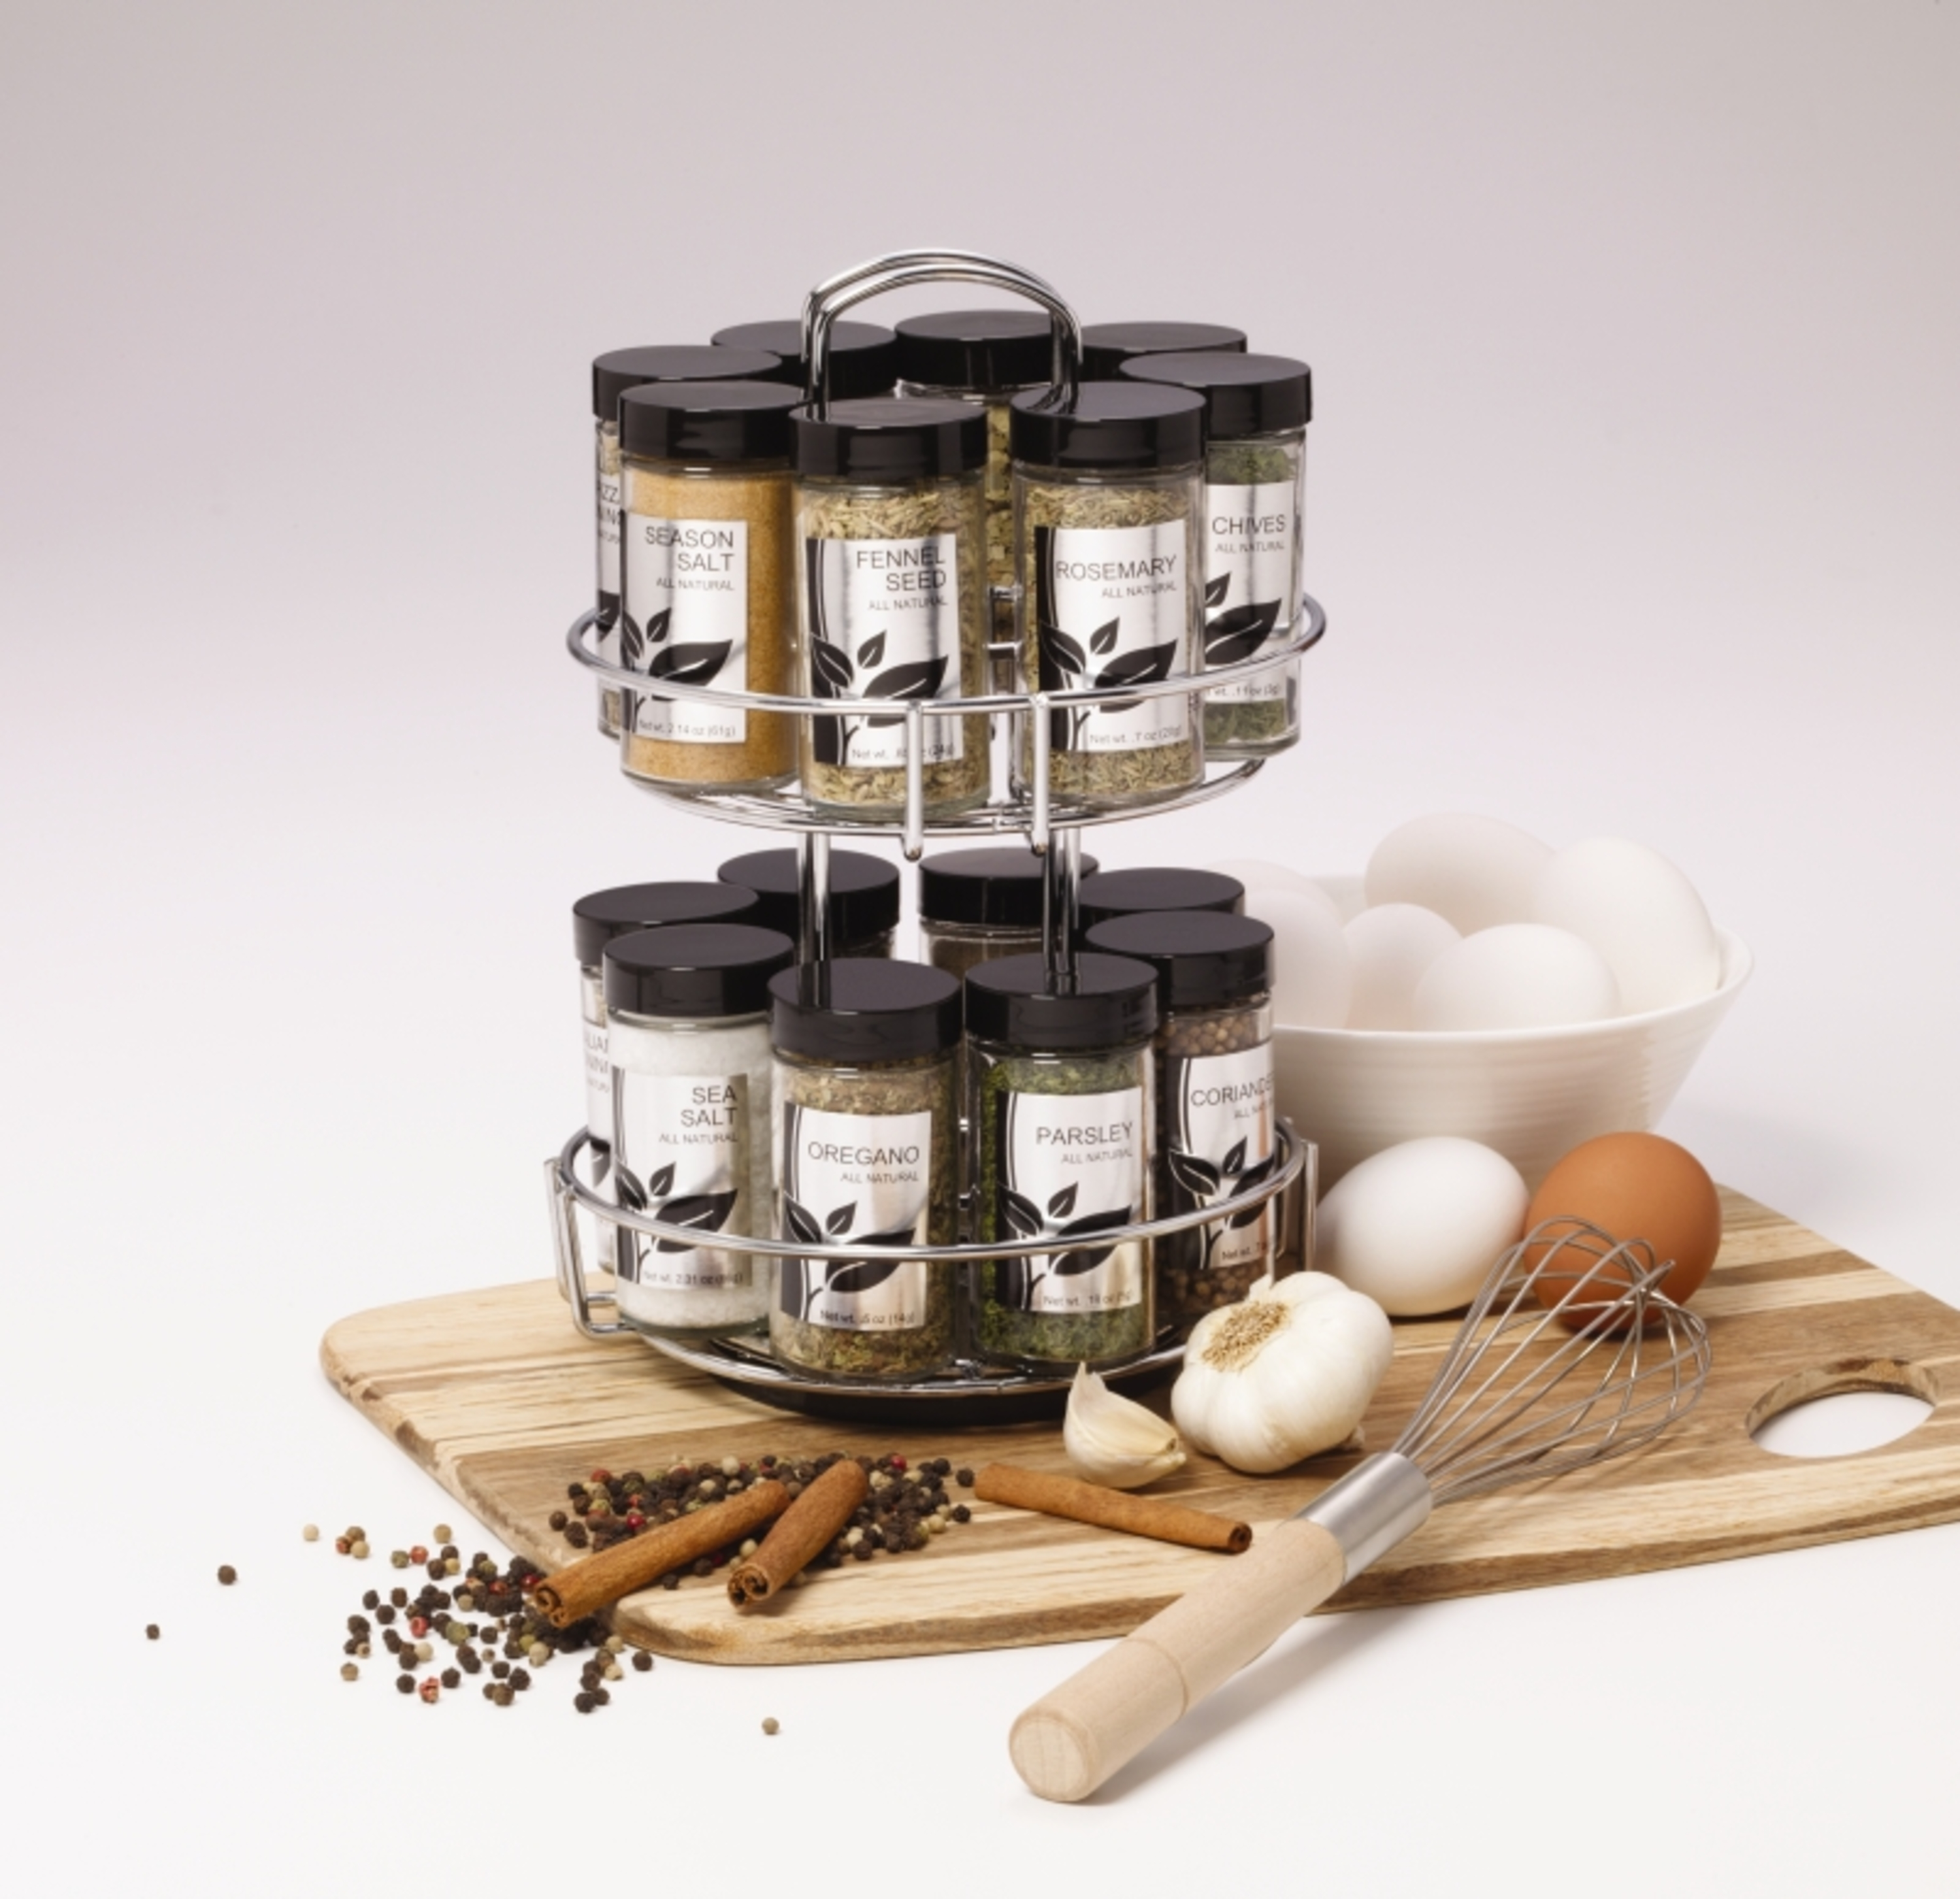 Kamenstein 16-Jar Revolving Chrome Wire Spice Rack